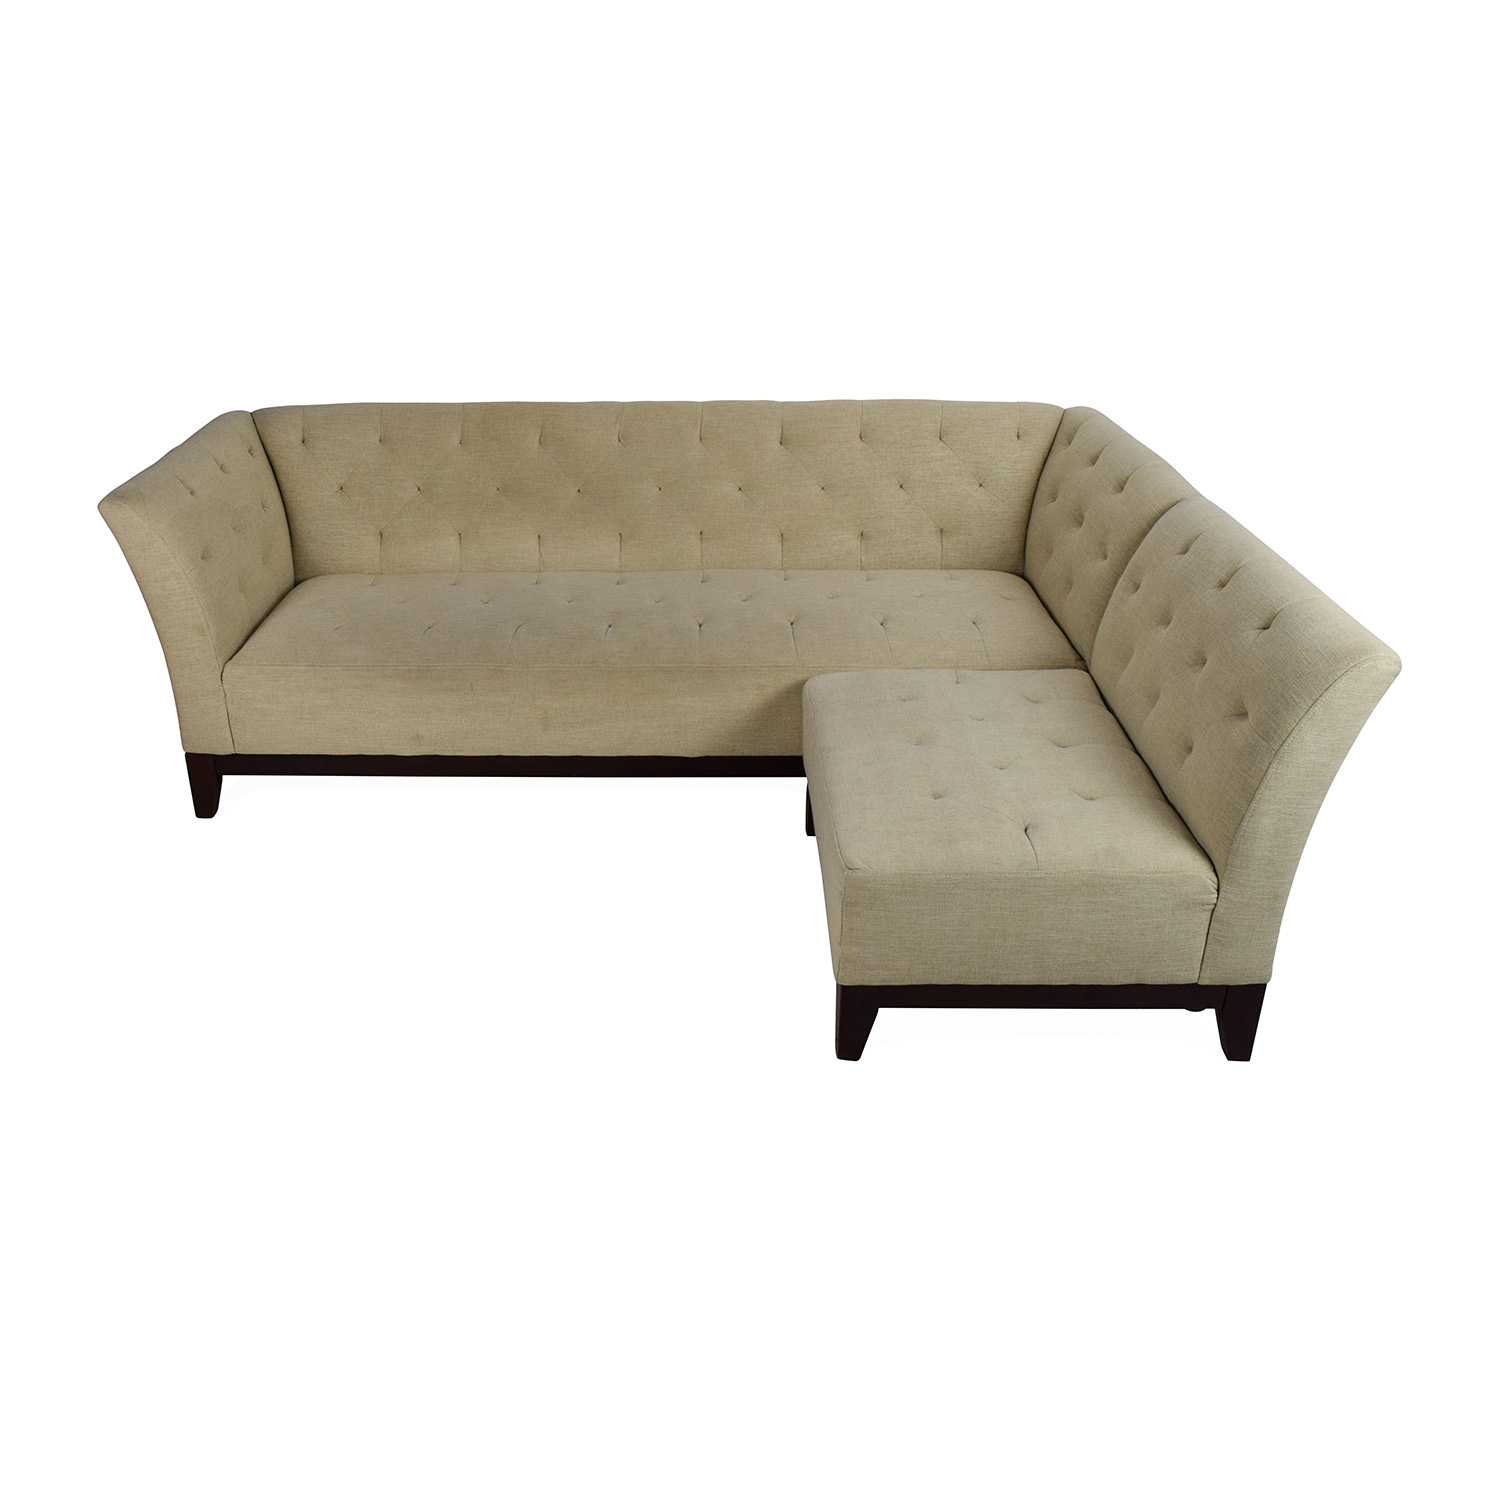 charcoal gray tufted sofa geneva bed best price macys kaleb leather collection